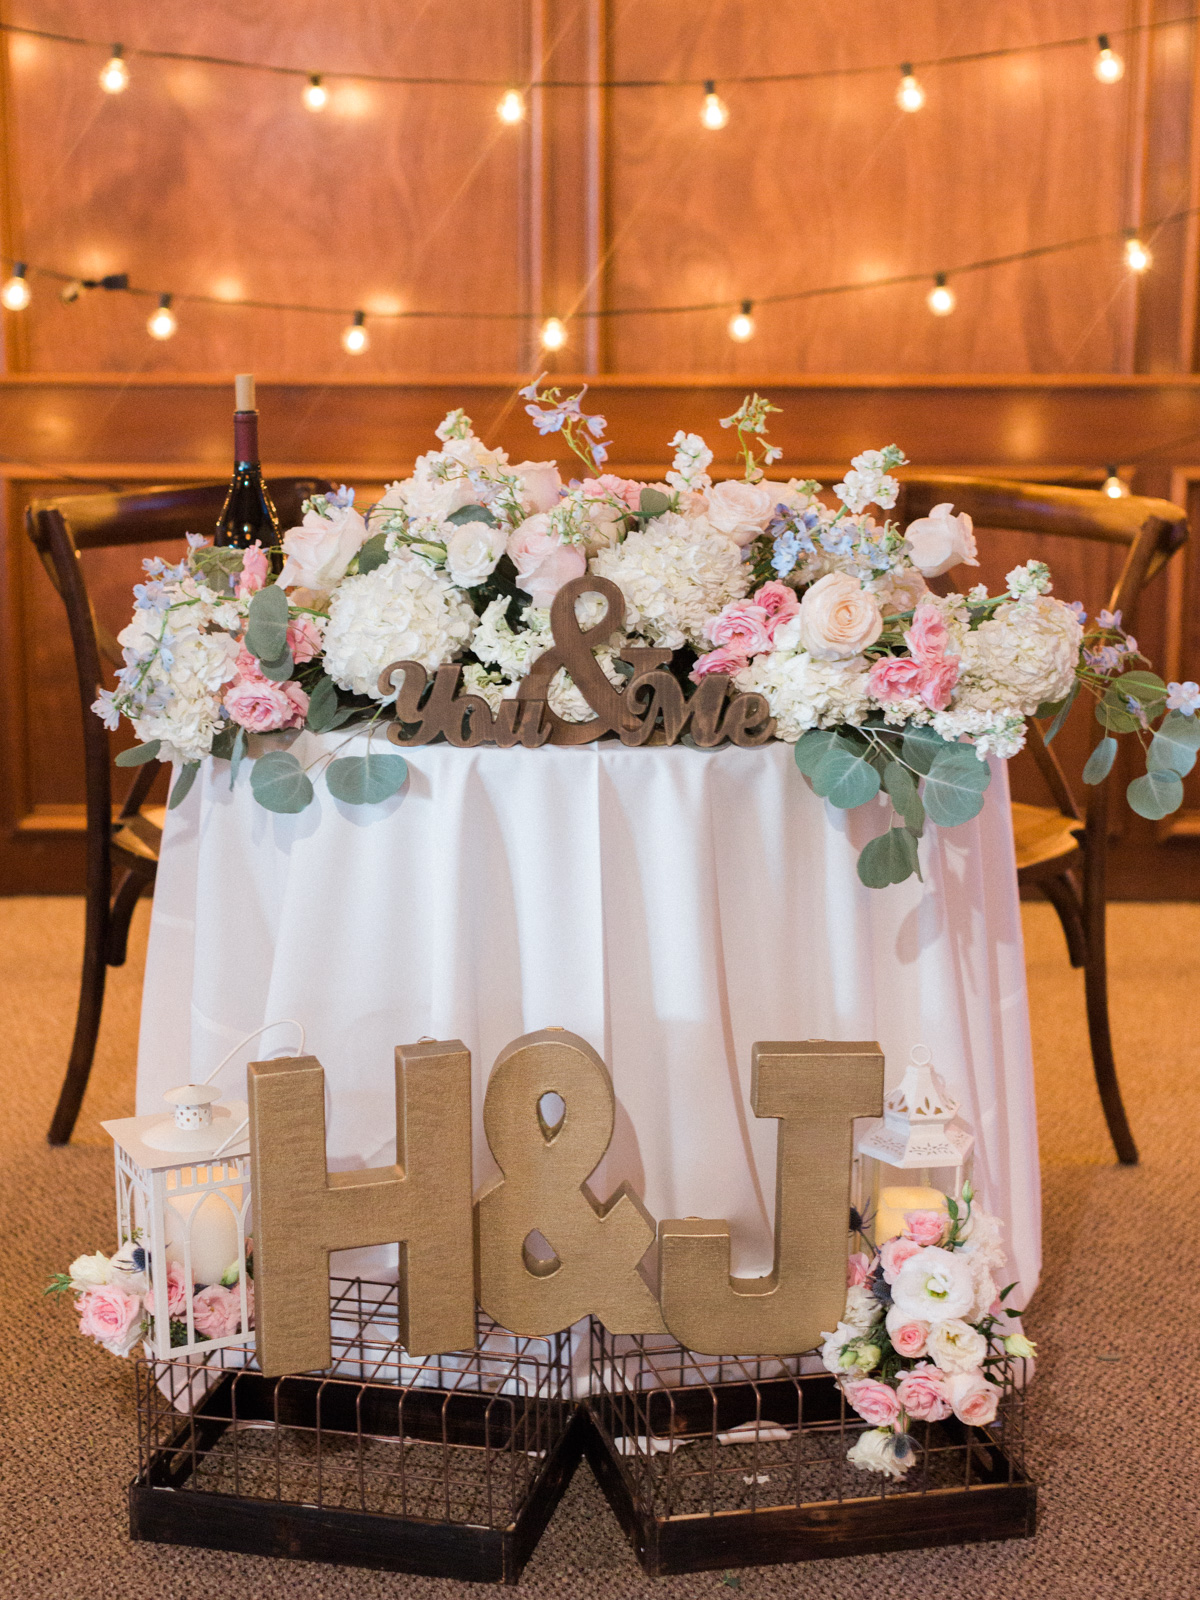 Gorgeous sweetheart table with florals by Soiree Design & Events |Harrison & Jocelyne's gorgeous Temecula wedding day at Wiens Family Cellars captured by Temecula wedding photographers Betsy & John